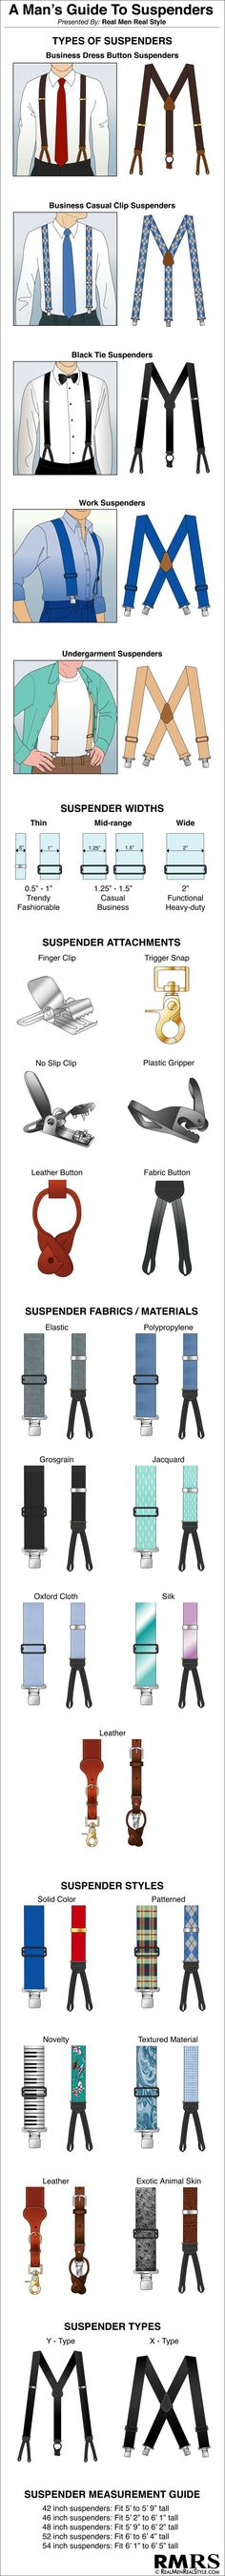 Everything You Need To Know About Men's Suspenders - An Infogrpahic | LIFESTYLE BY PS